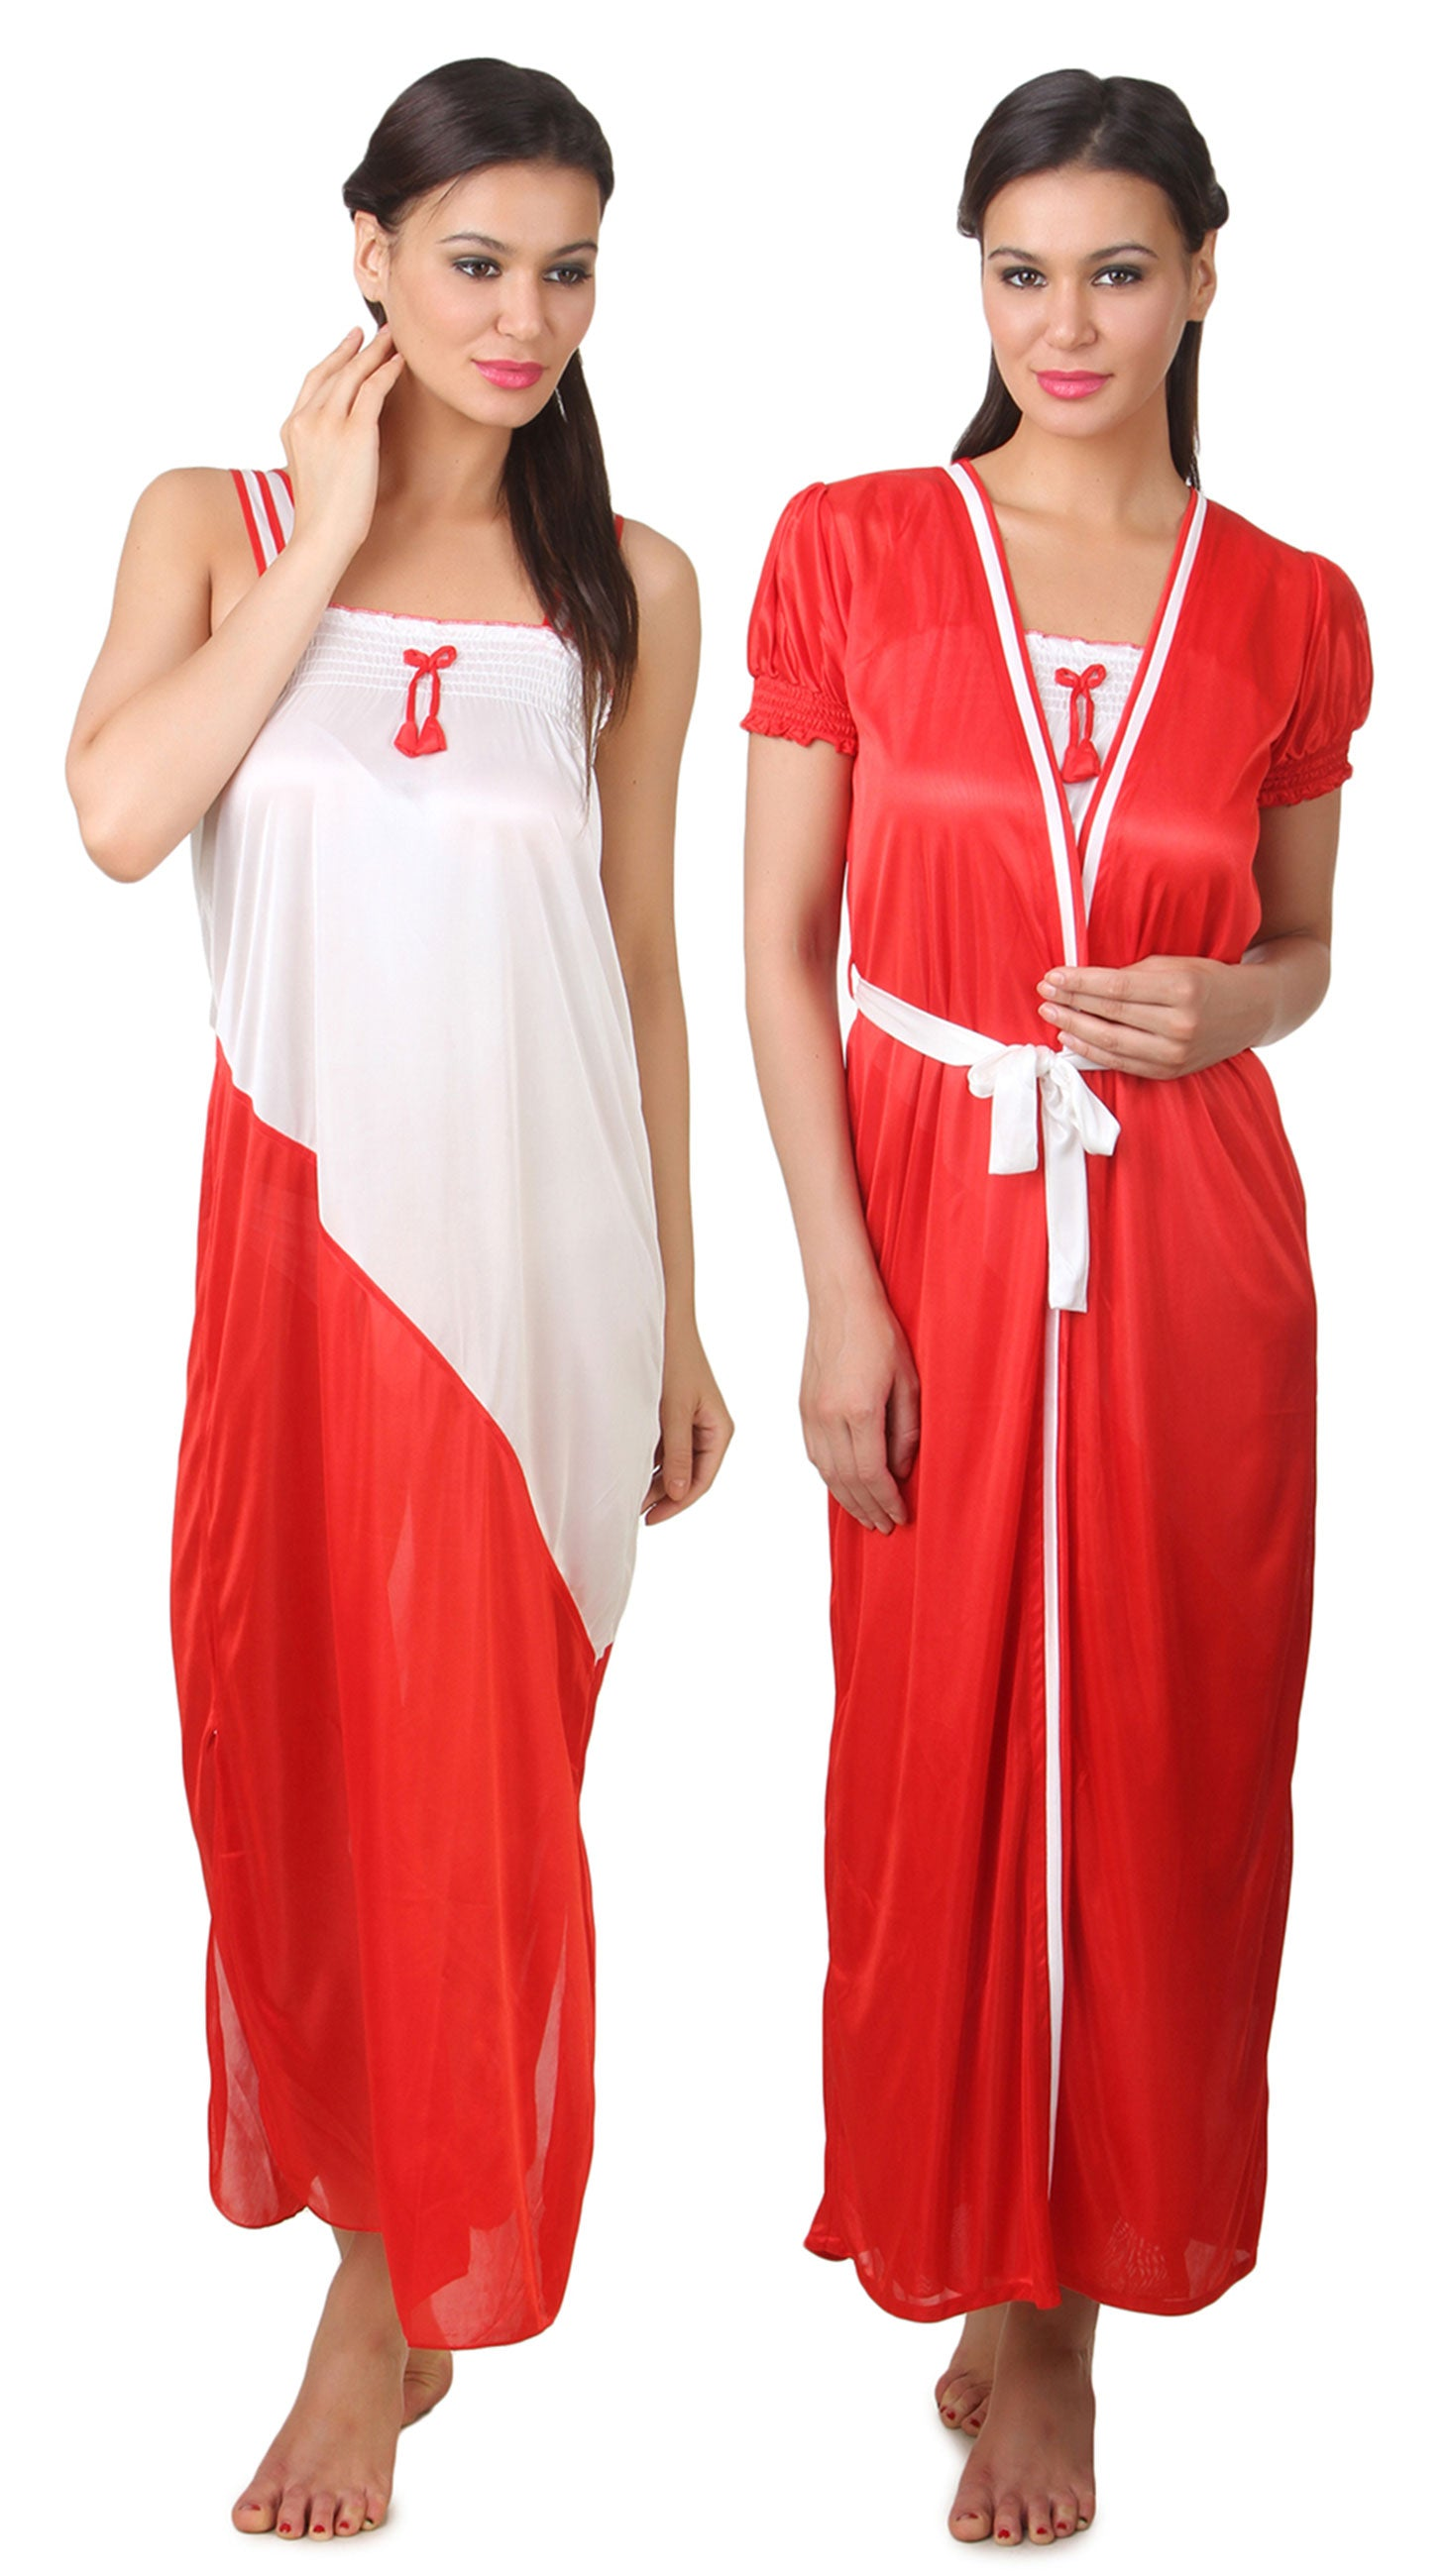 Fasense Satin Nightwear 2 PCs Set Of Nighty & Robe FA050 - fasensestore